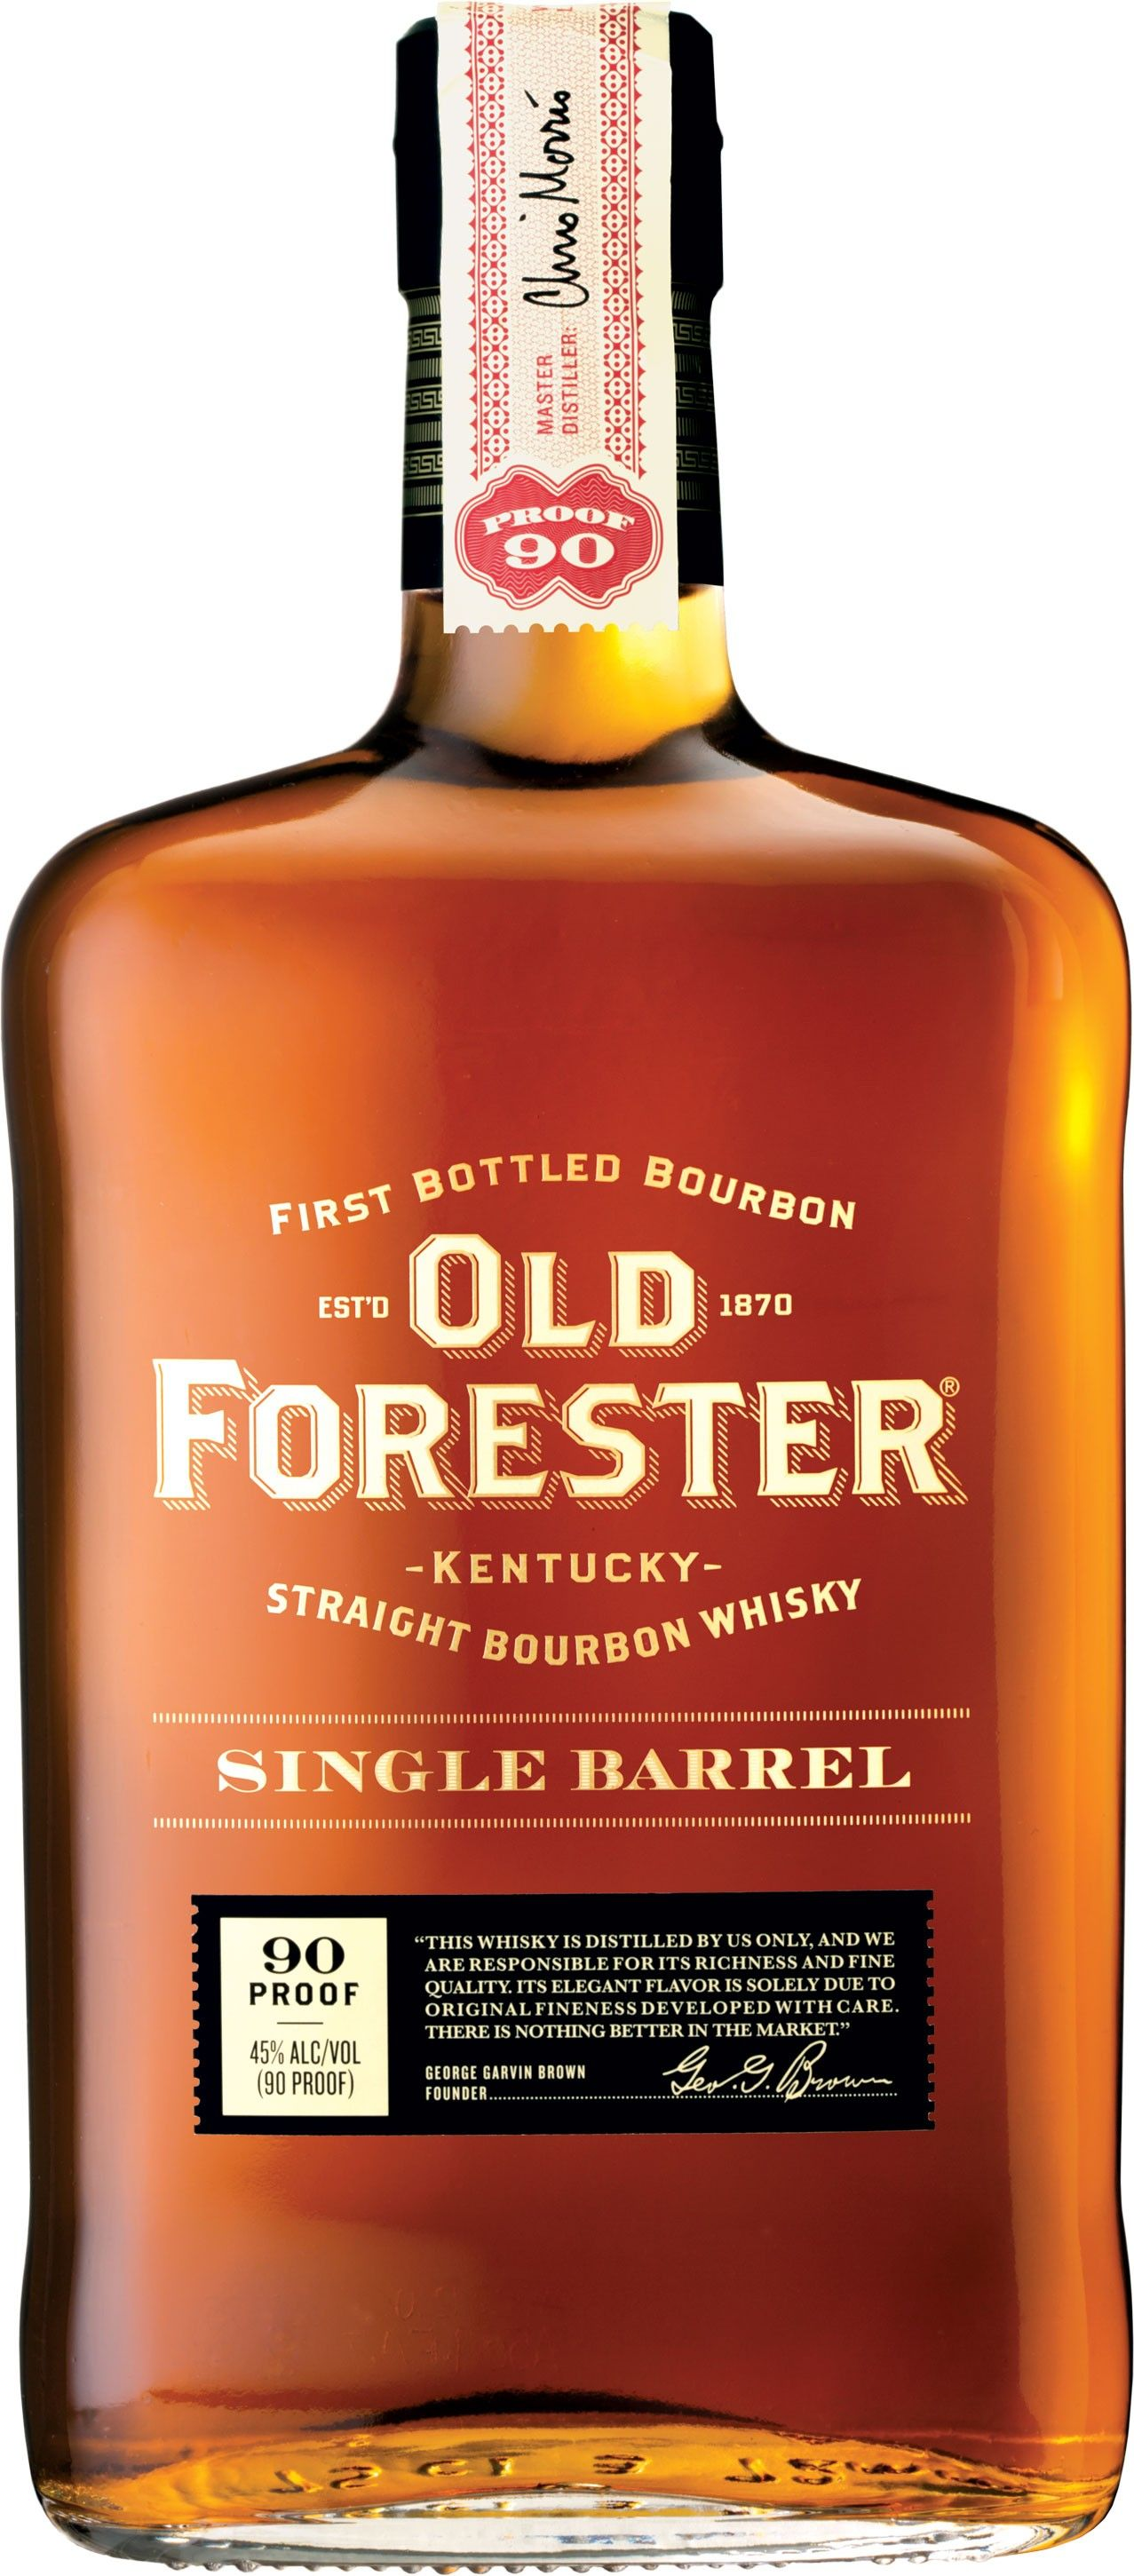 Old Forester Single Barrel Kentucky Straight Bourbon Whisky Bourbon Whisky Bourbon Drinks